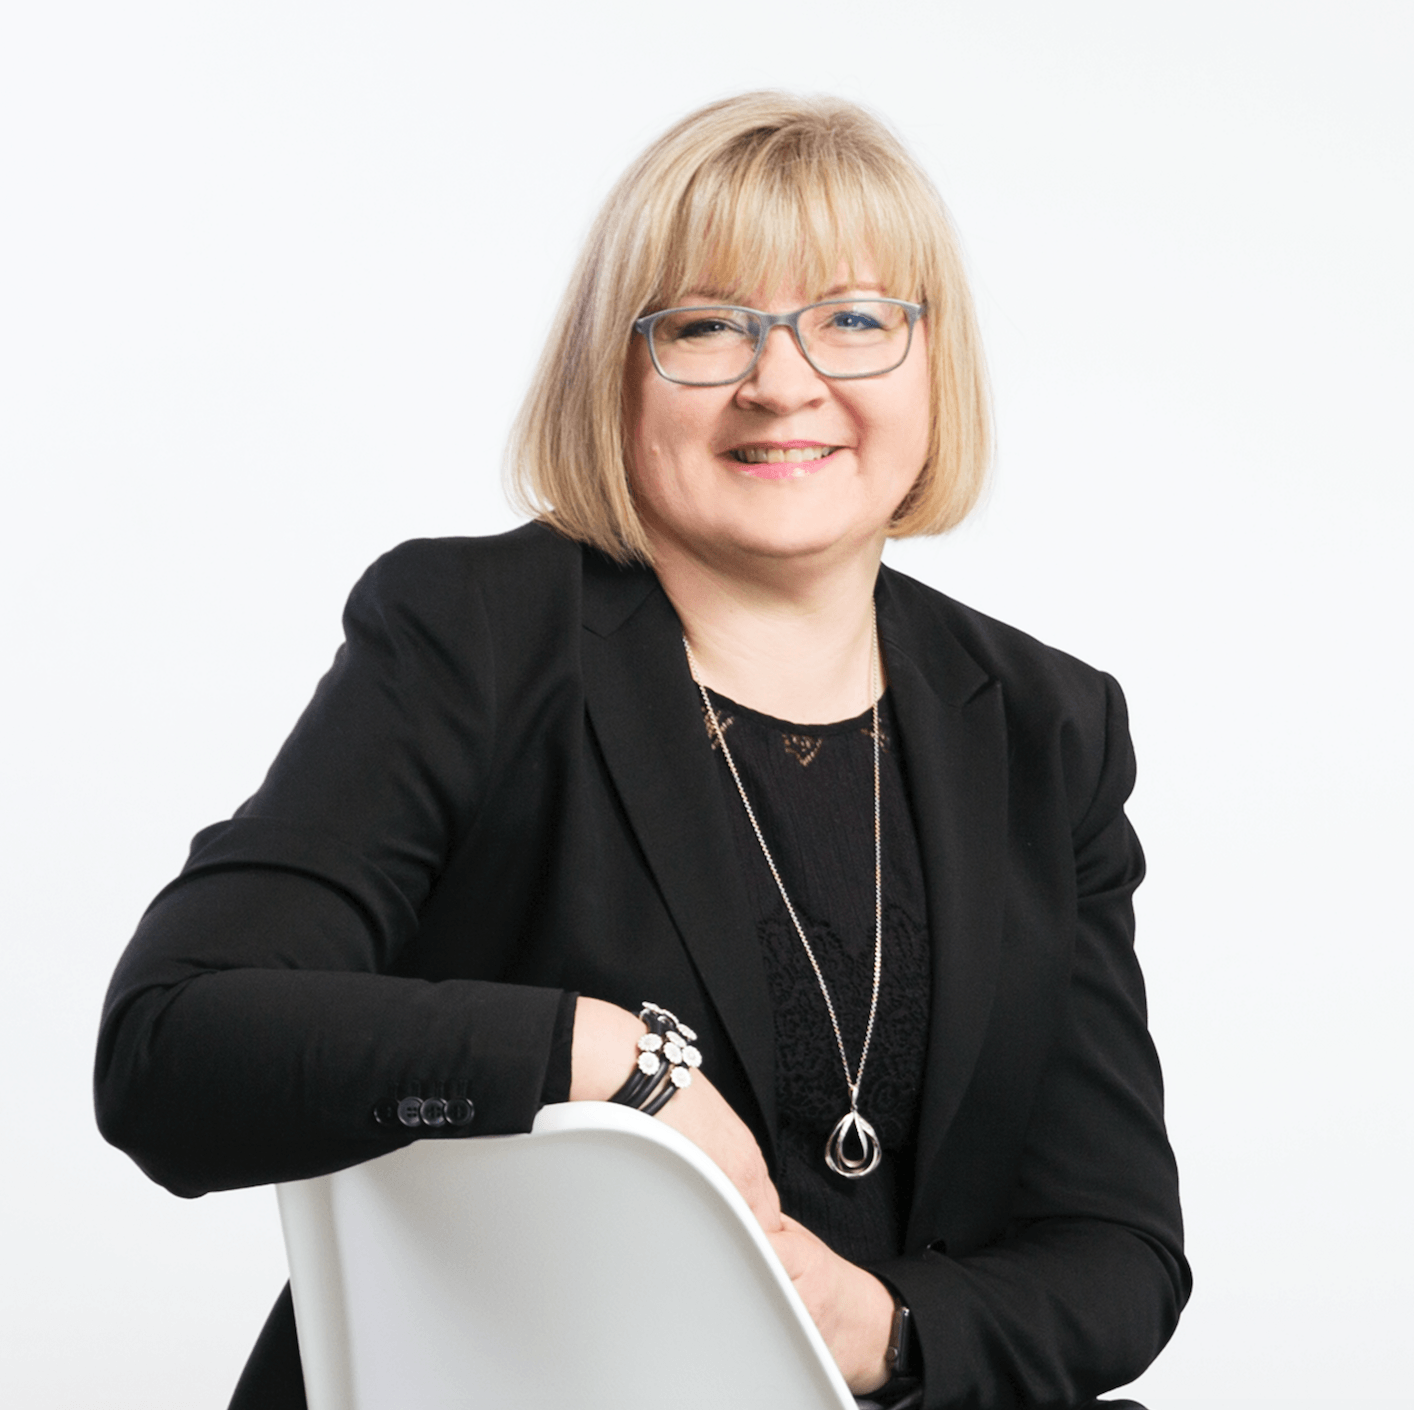 Businessmentor Birgitte Feldborg